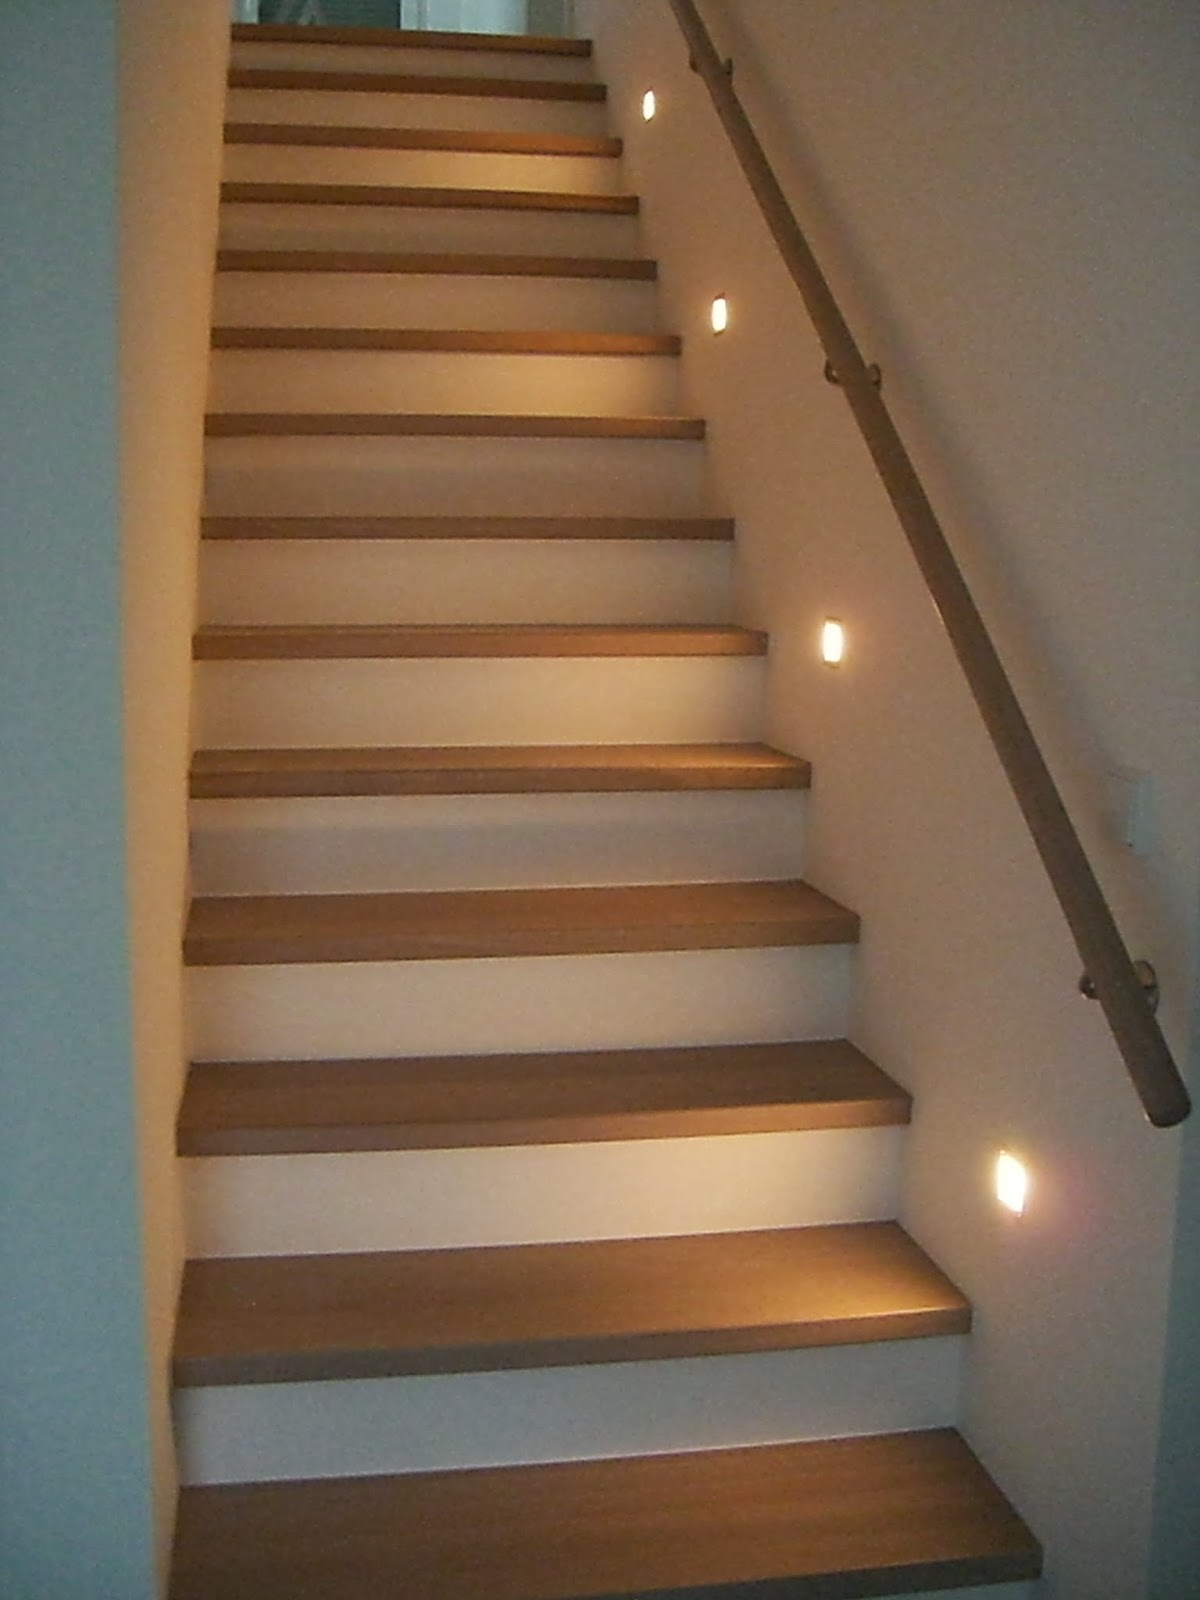 baubericht dachstrift treppe fertig gestellt. Black Bedroom Furniture Sets. Home Design Ideas